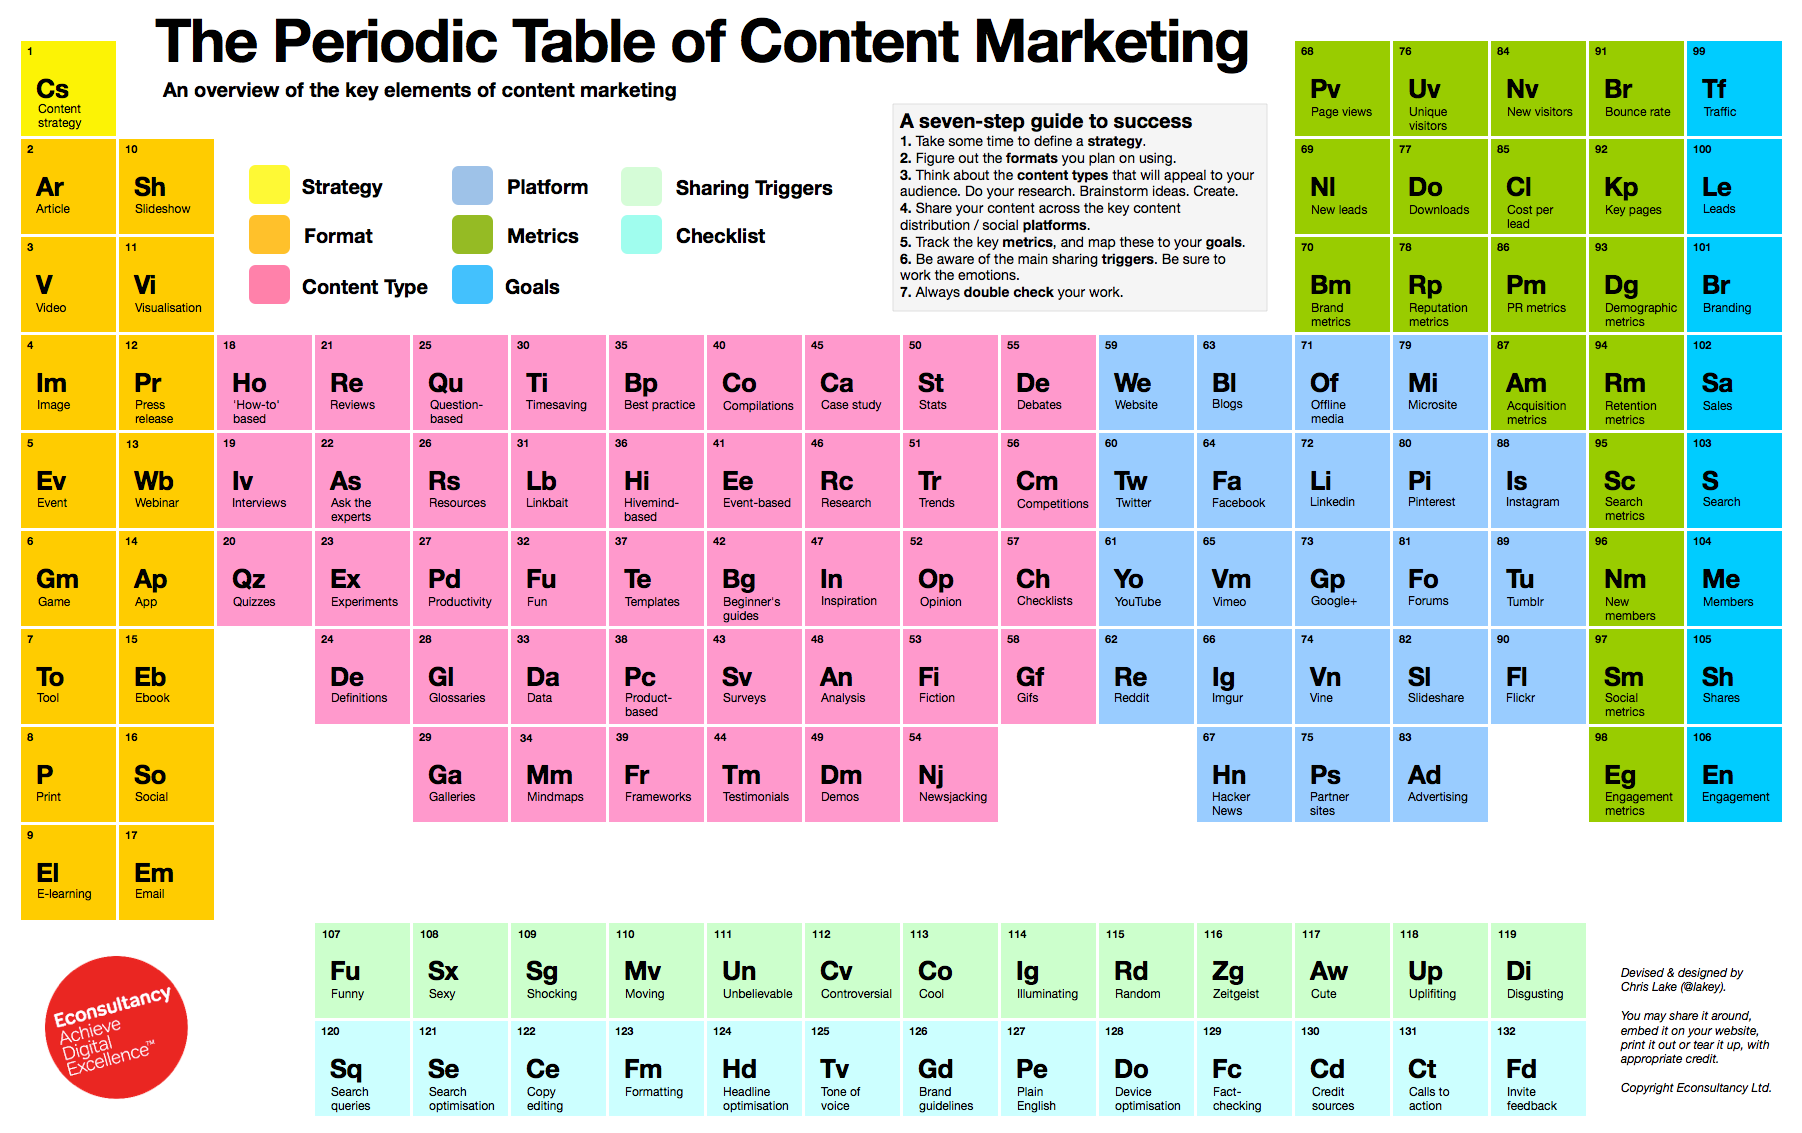 tabla periodica marketing contenido 02